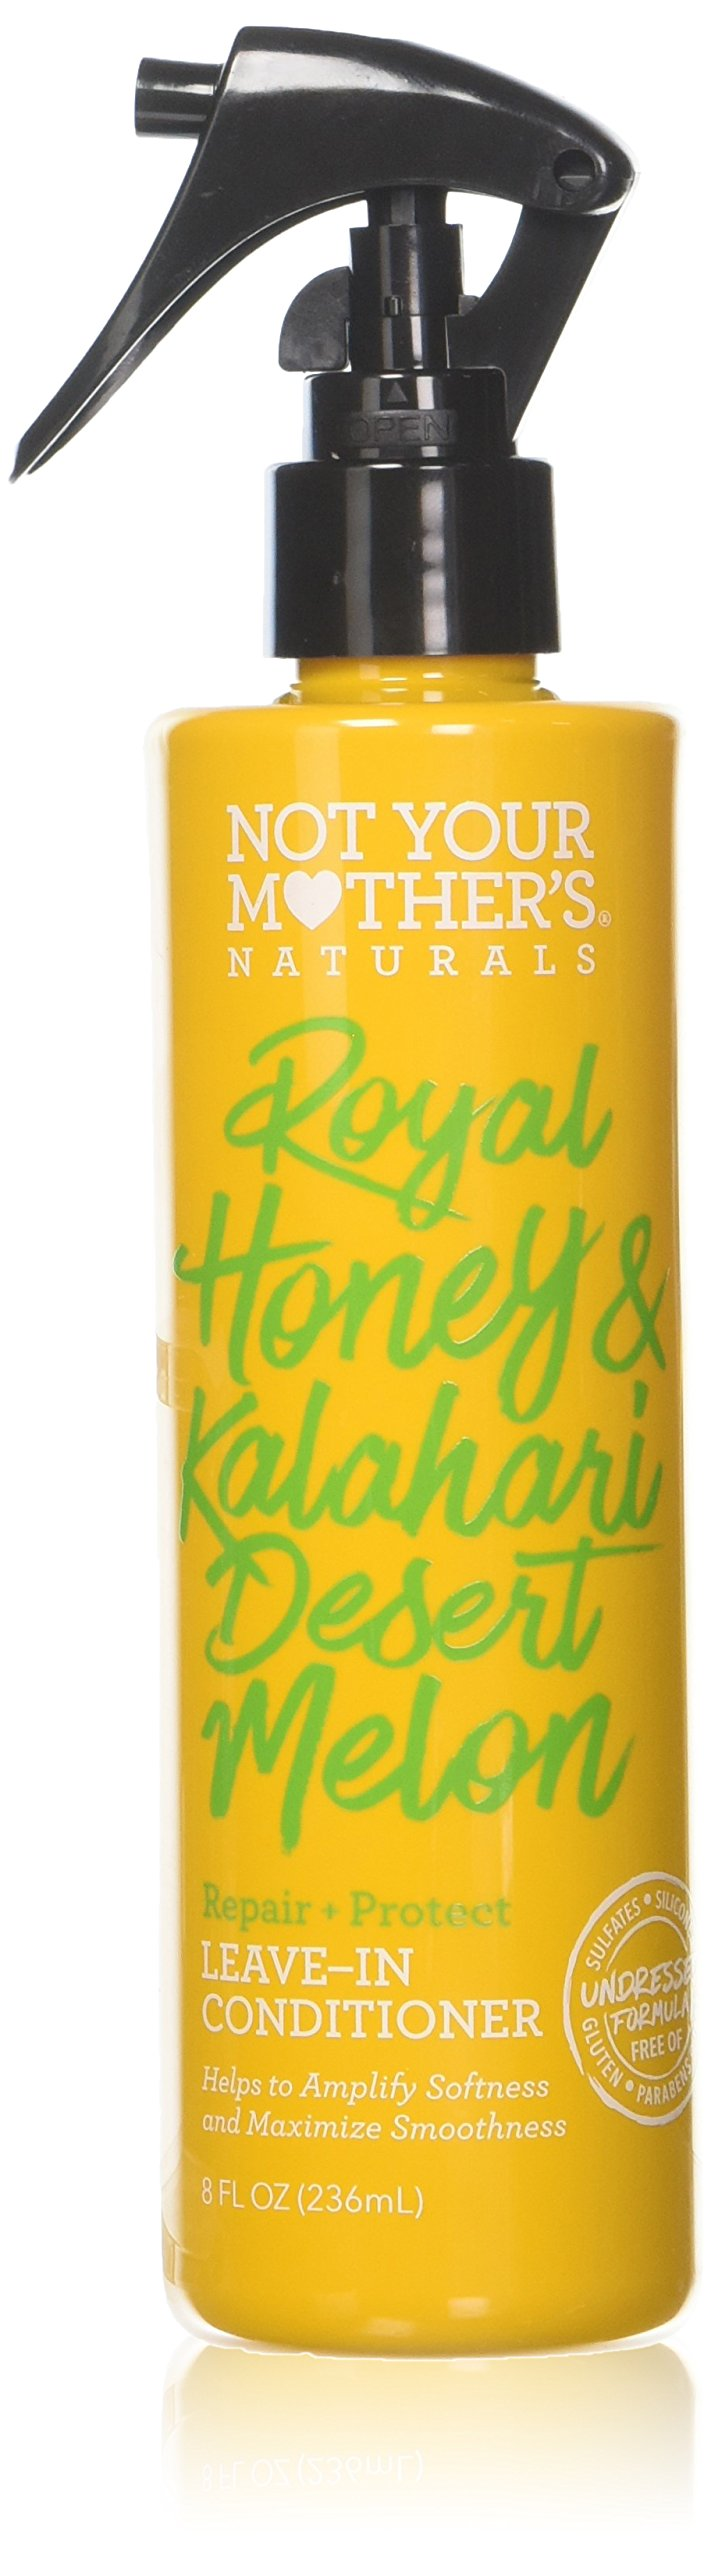 Not Your Mother's Not Your Mother's Naturals Royal Honey & Kalahari Desert Melon Leave-In Conditioner (Royal Honey & Desert Melon)